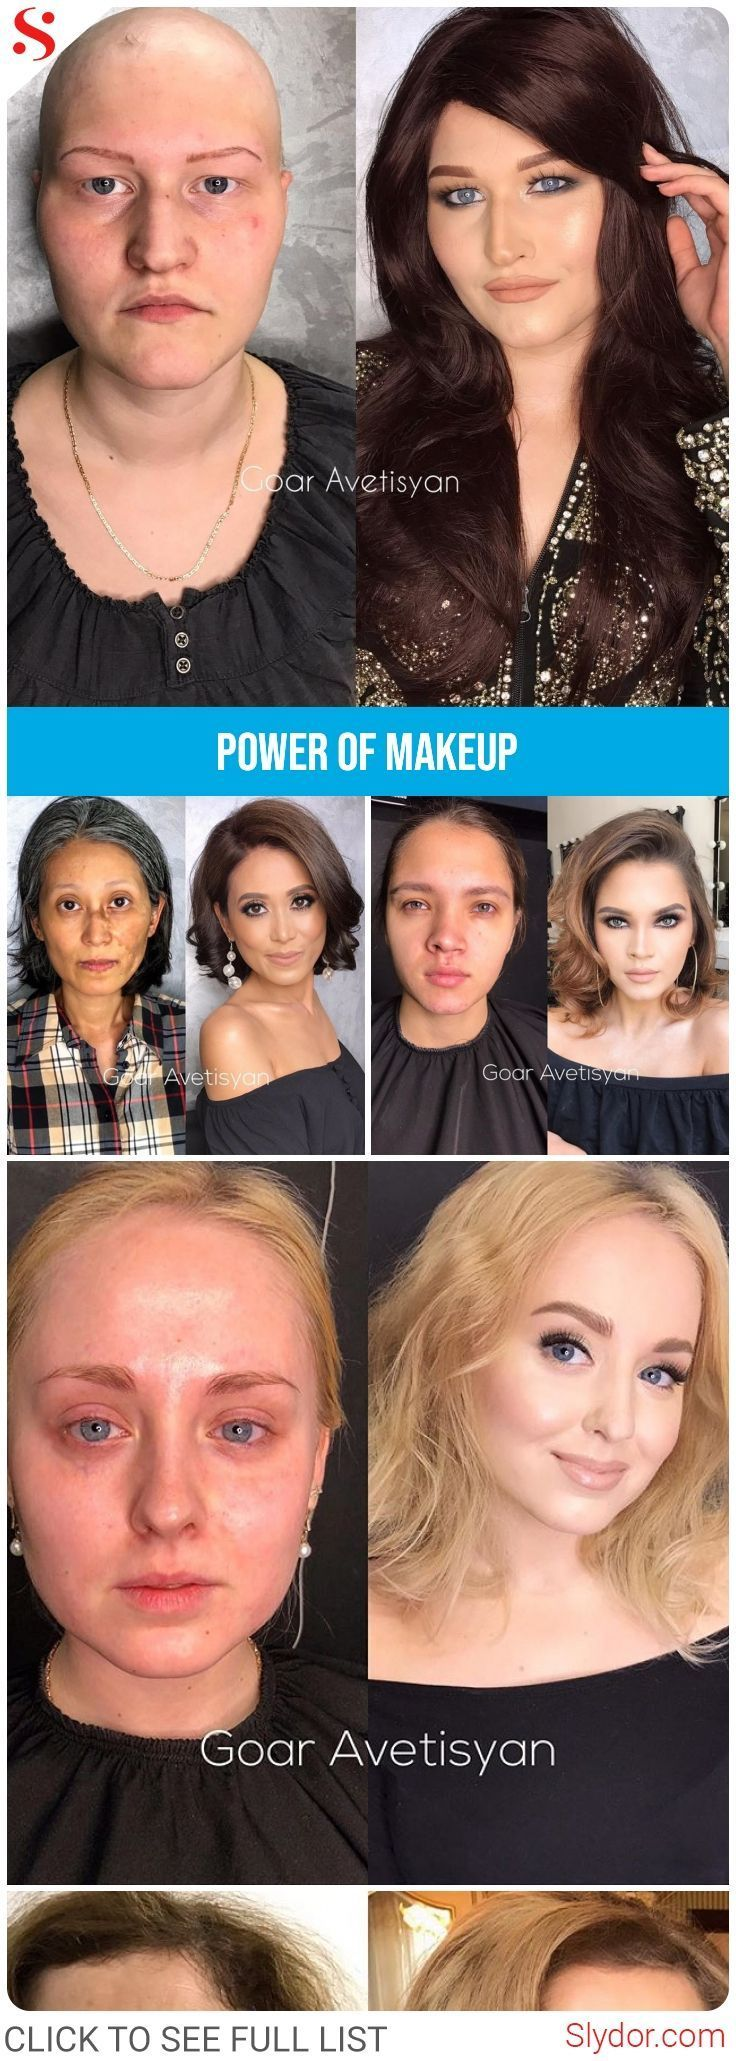 Epic Makeup Transformations That Will Give You A Shock #makeup # transformation #beauty #instagram #goar #talent #amazing #epic #slydor